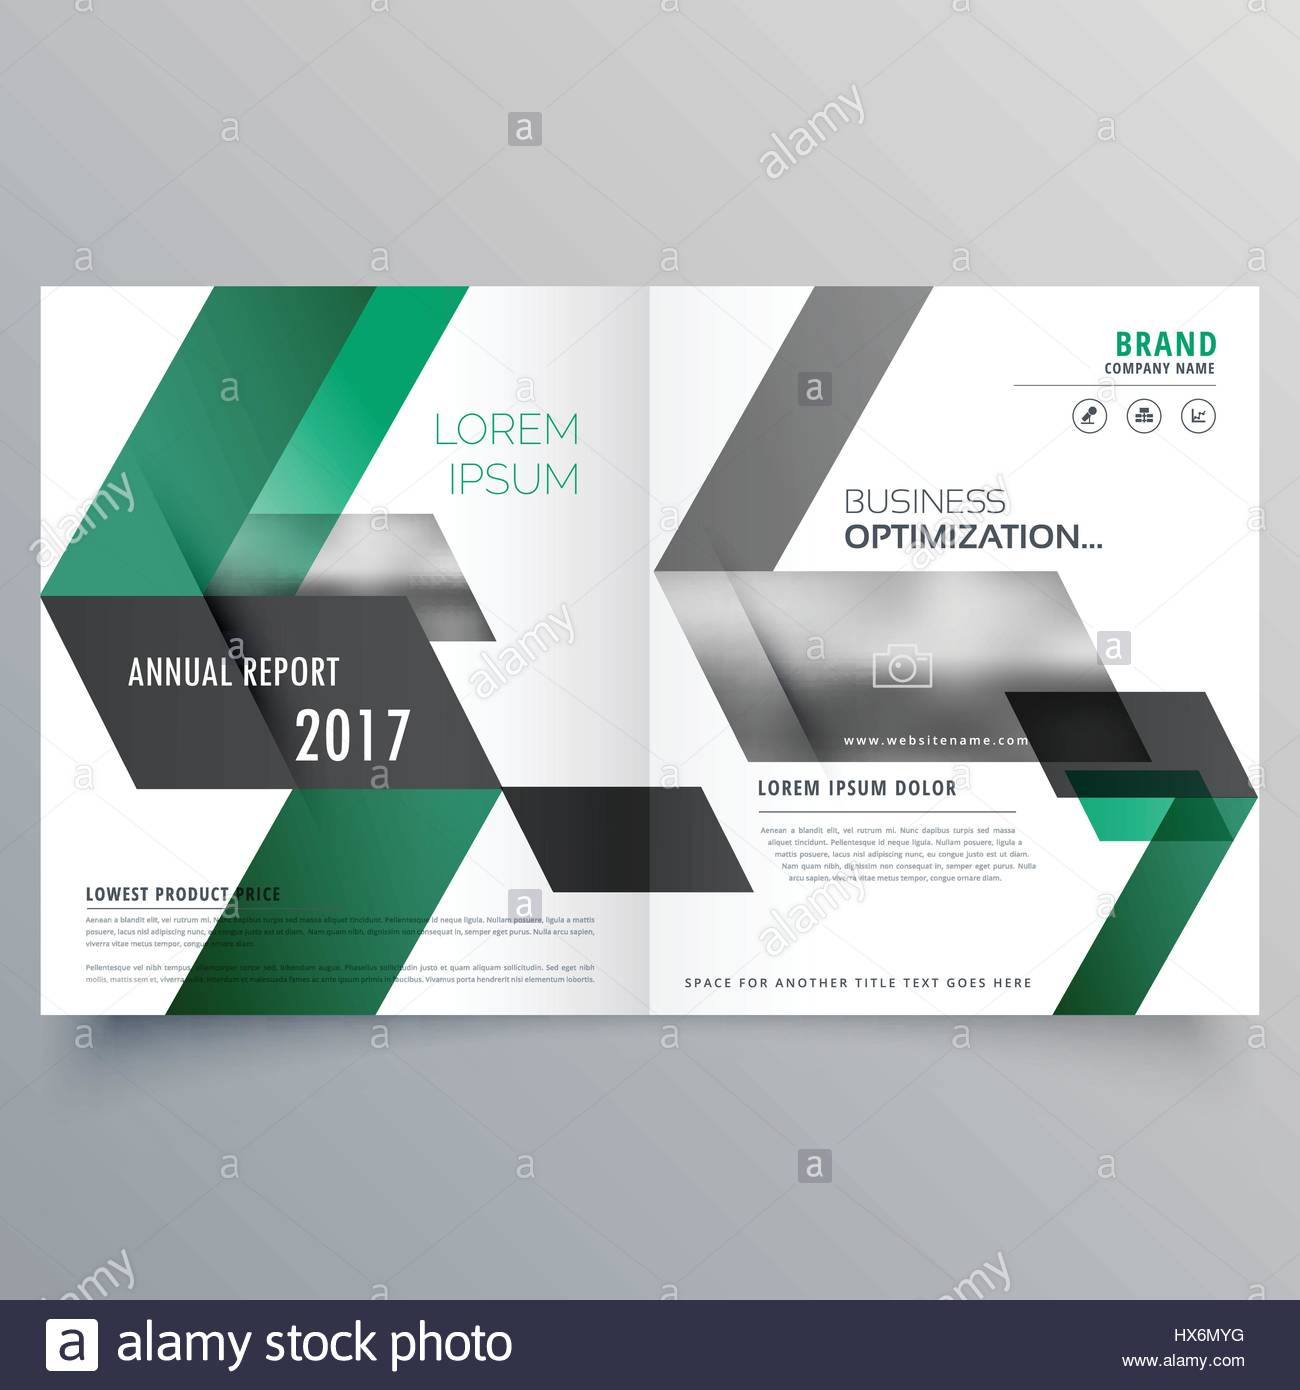 abstract bifold business brochure design template with green shapes